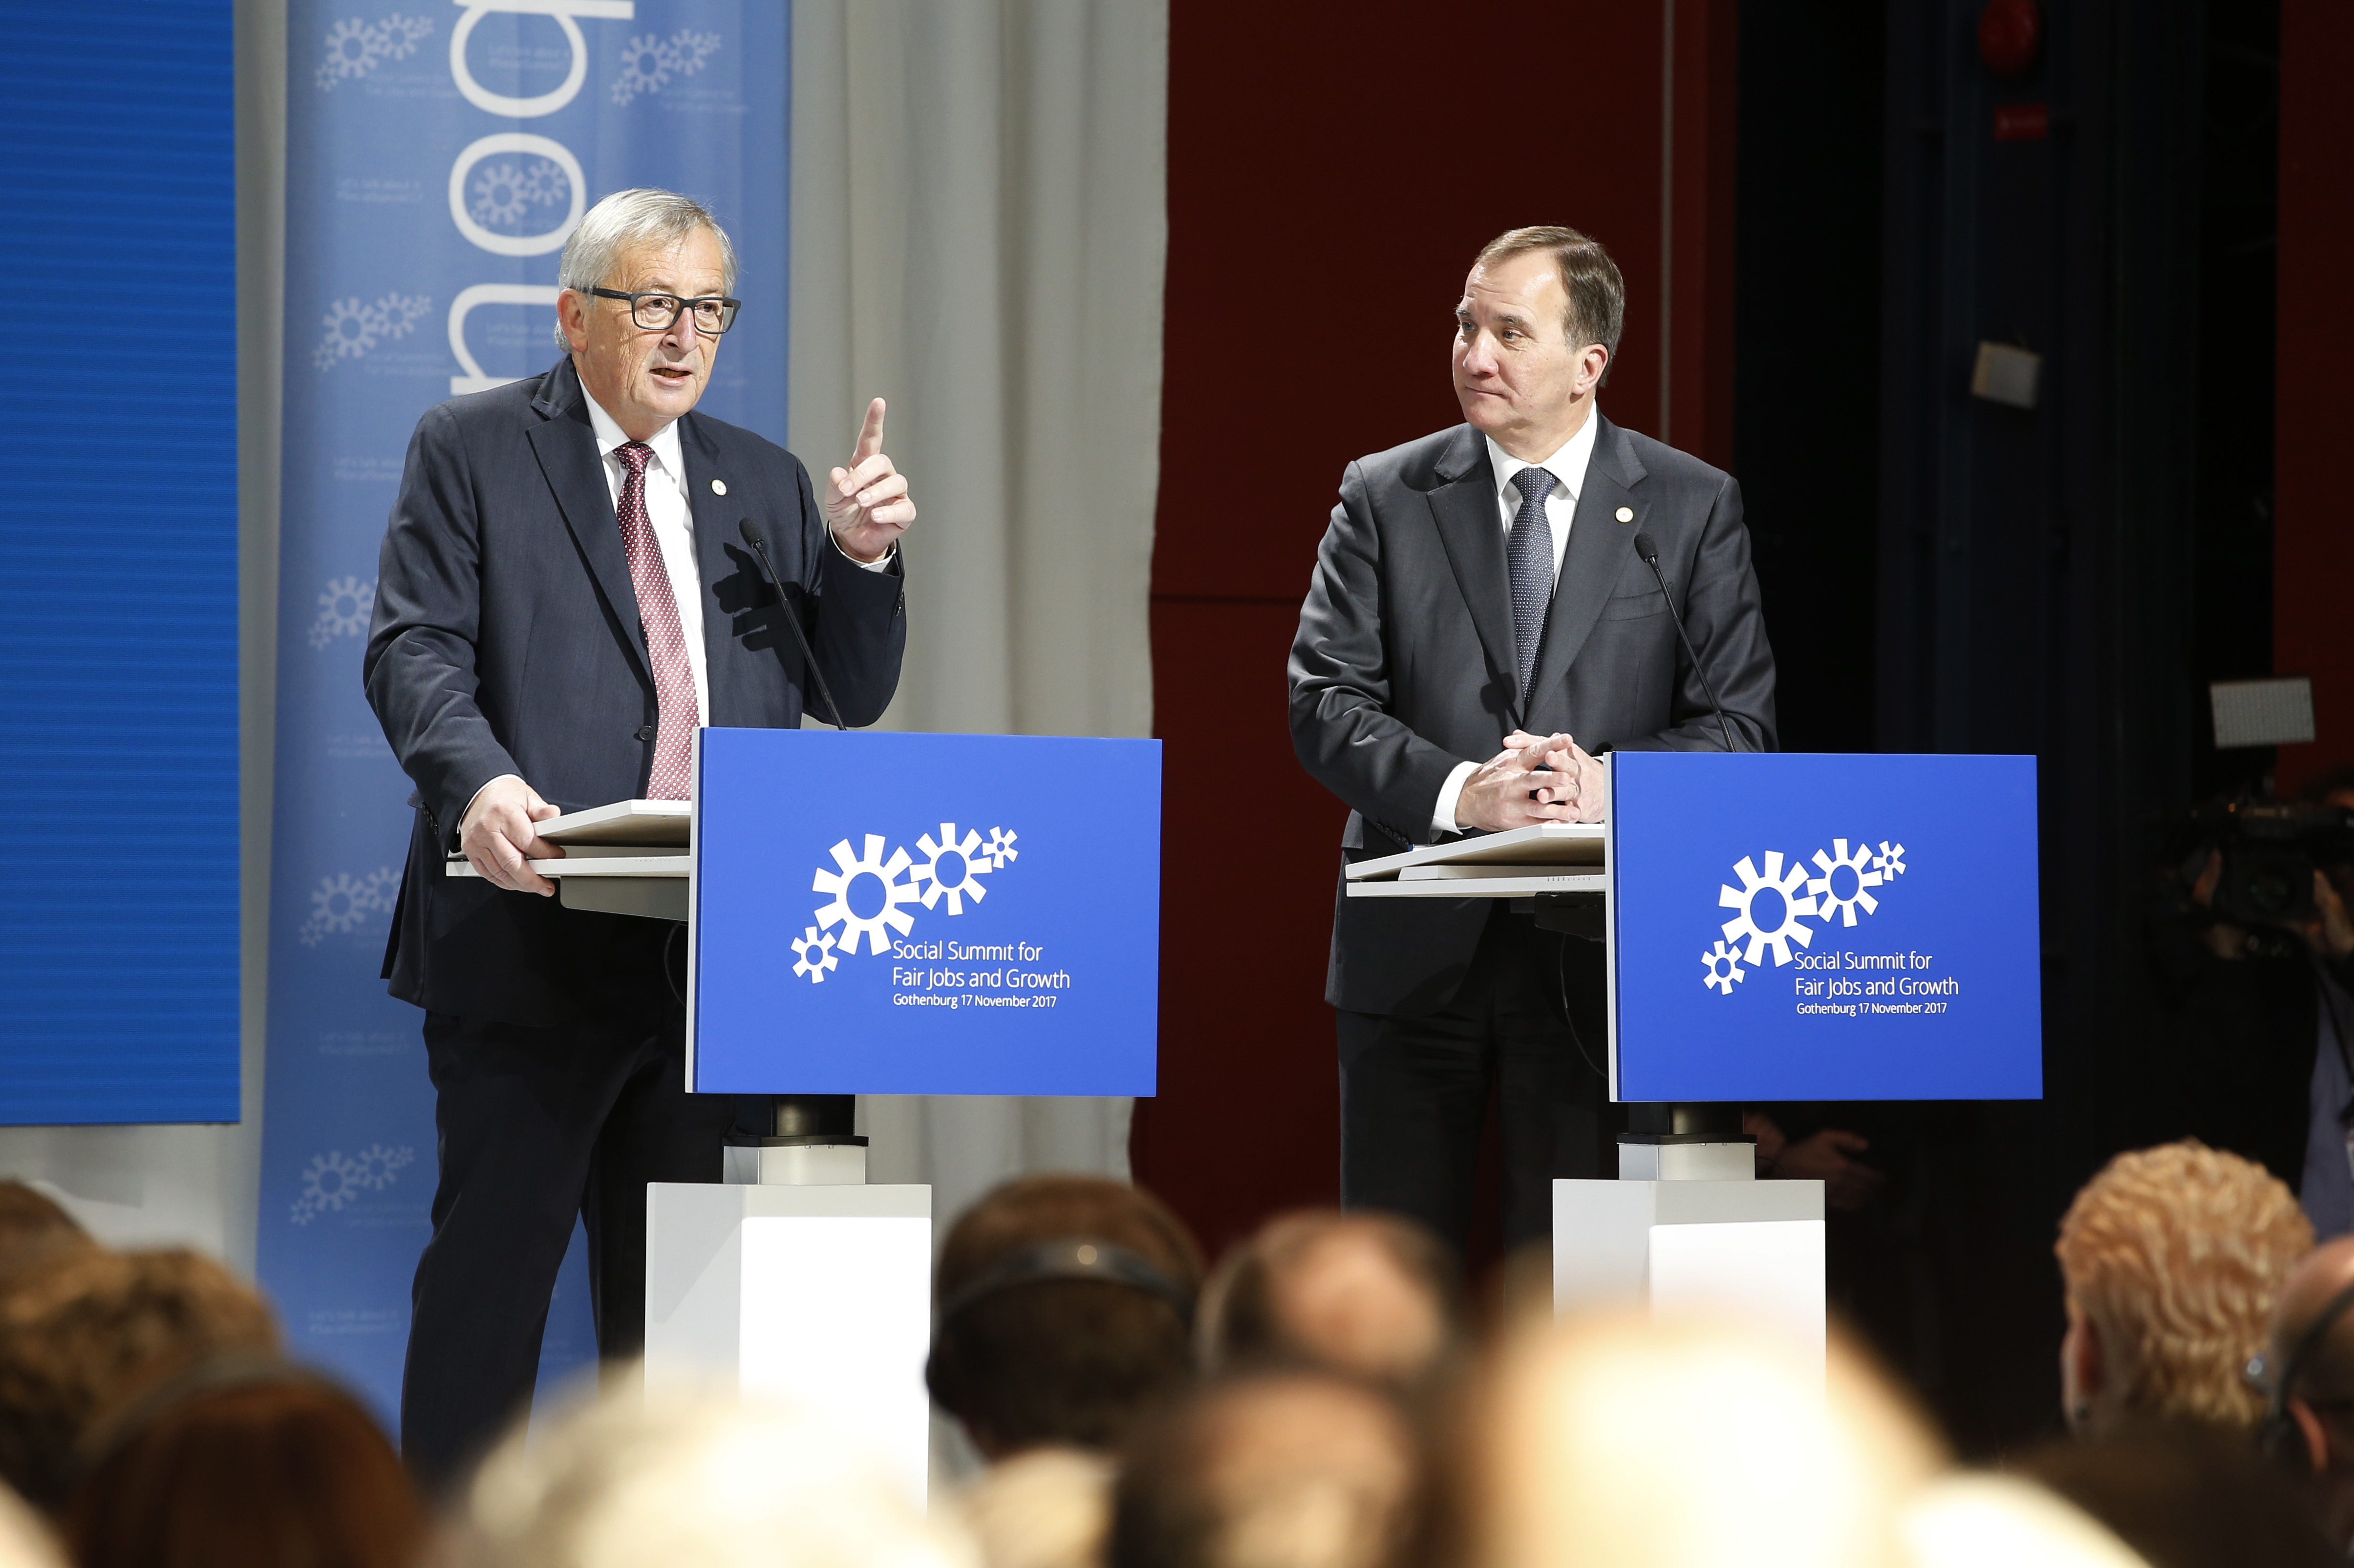 Löfven and Juncker on stage.